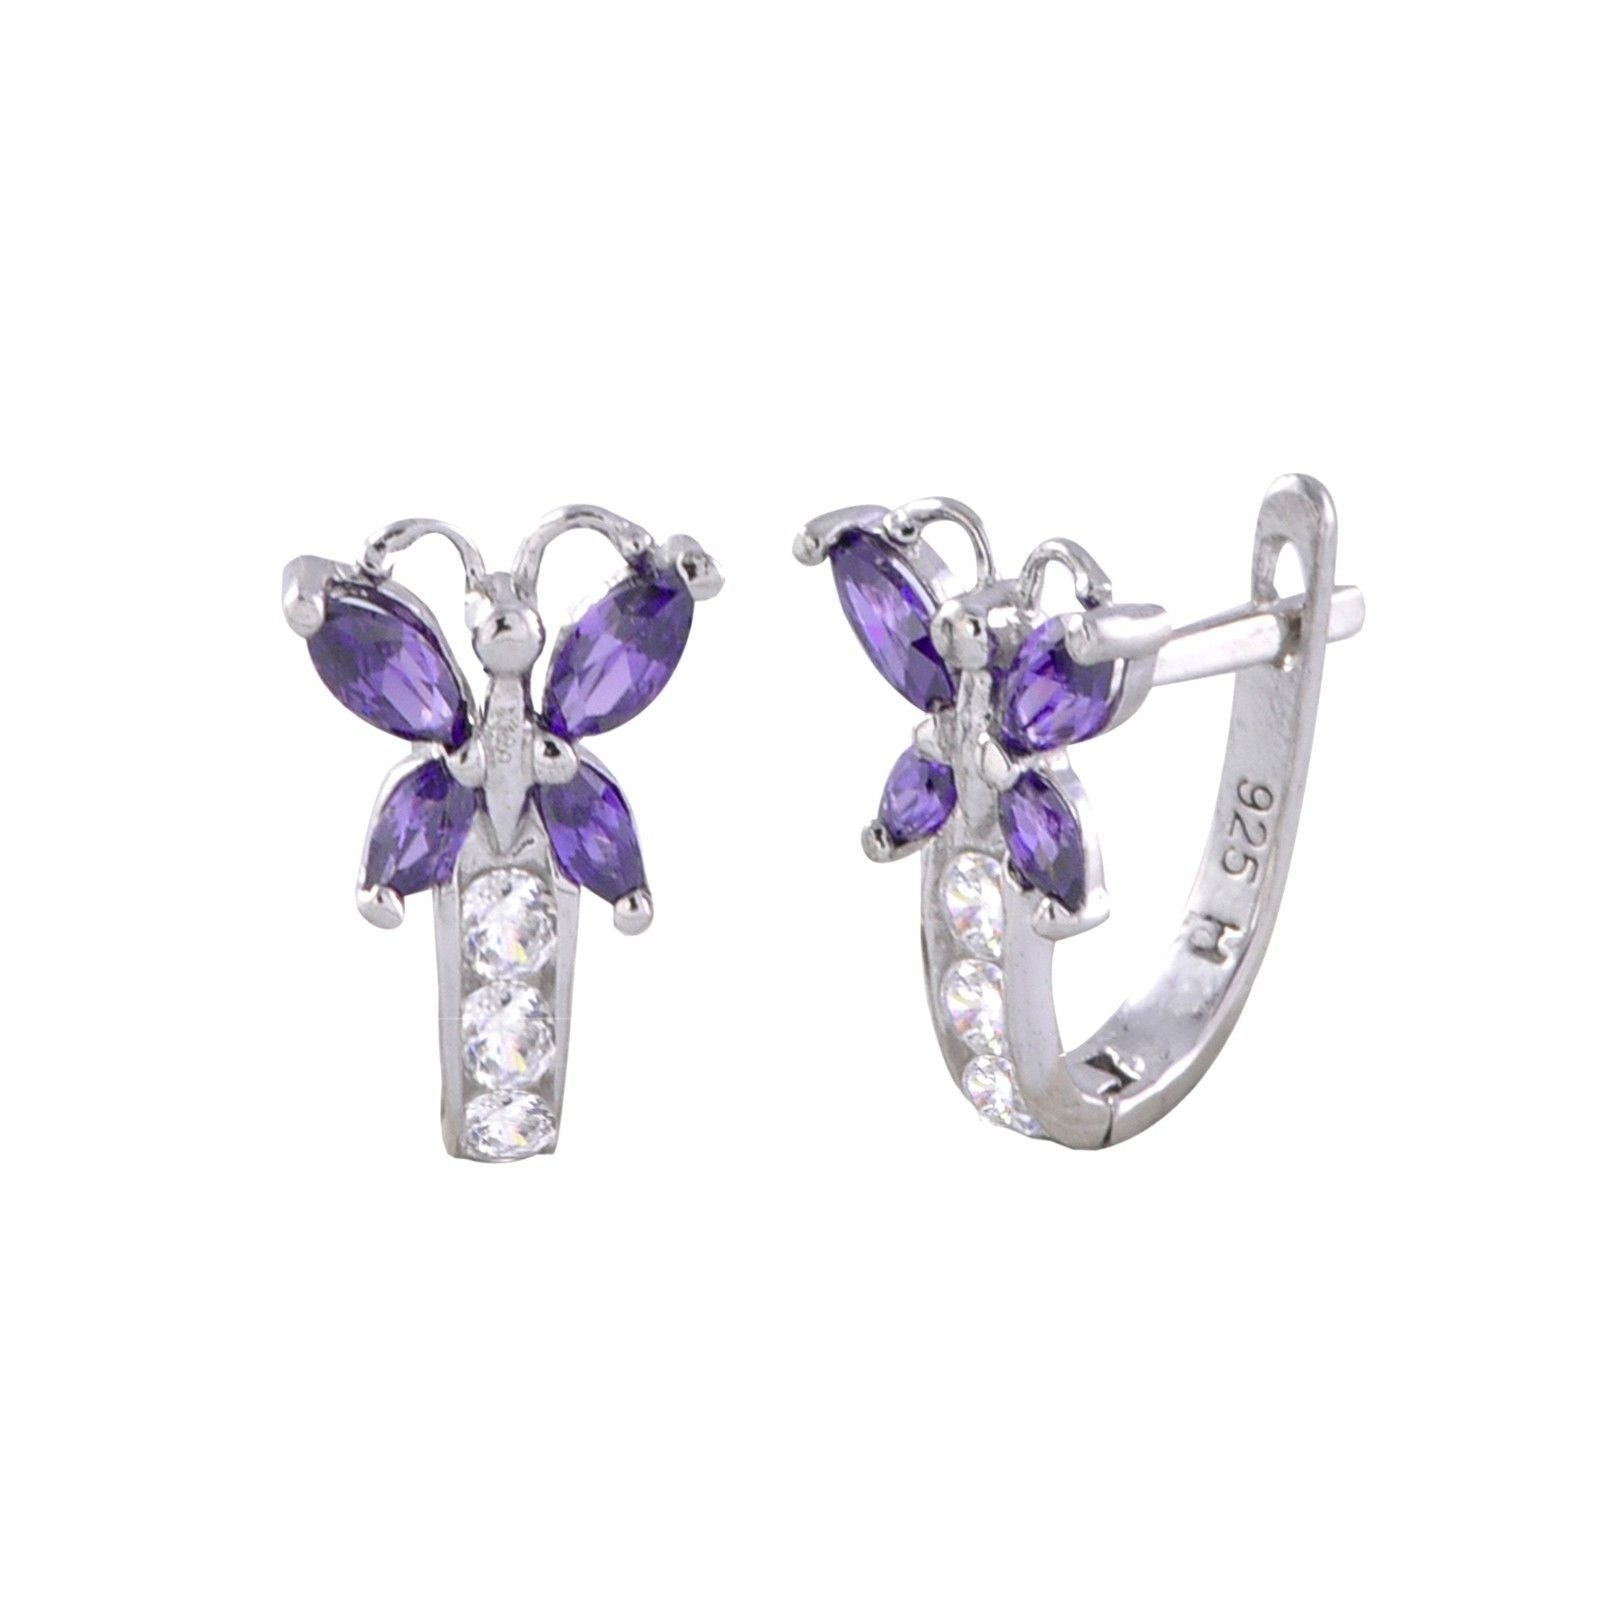 Sterling Silver Leverback Earrings Butterfly Cz Birthstone Colors  Two  Color